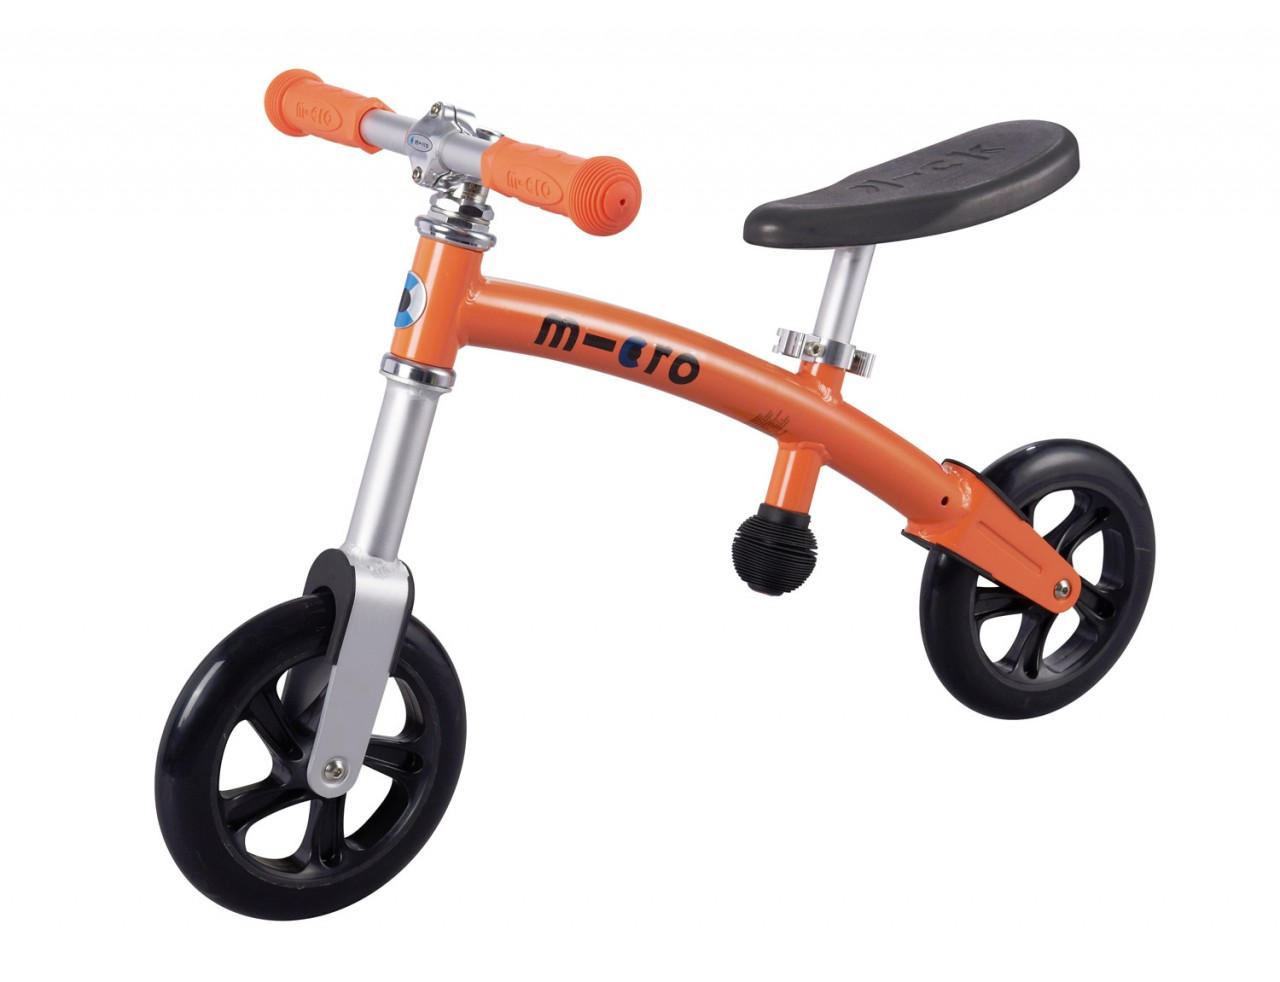 micro-g-bike-200-mm, 79.90 EUR @ microscooter